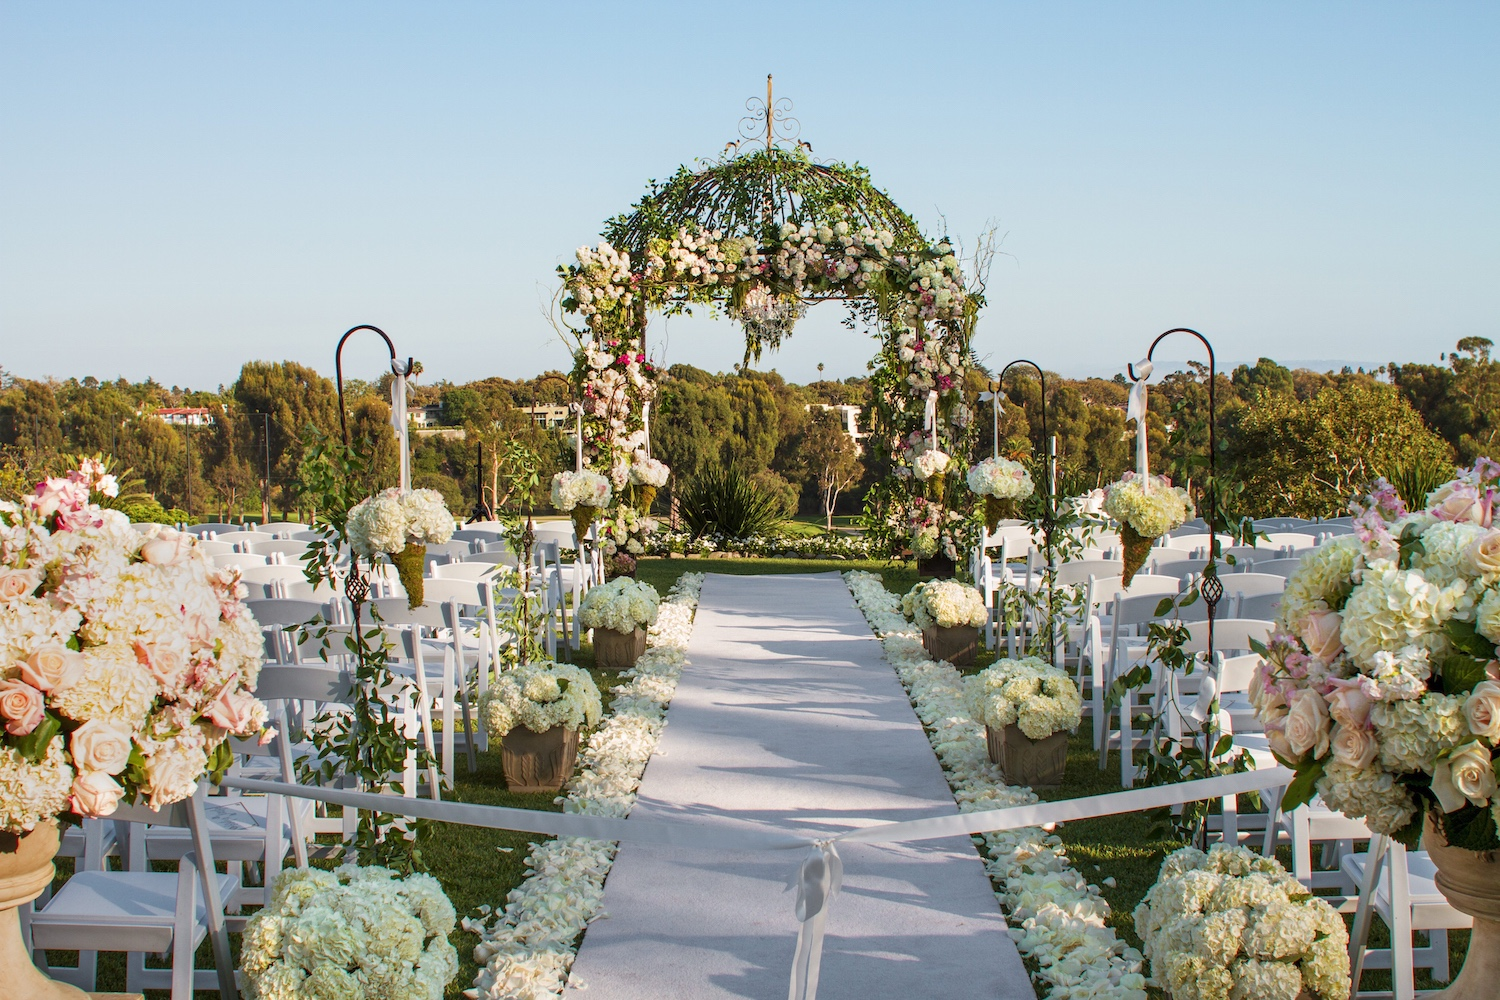 Outdoor Wedding Ideas Tips From The Experts: Linda Howard Events Designer Shares Her Tips On Creating